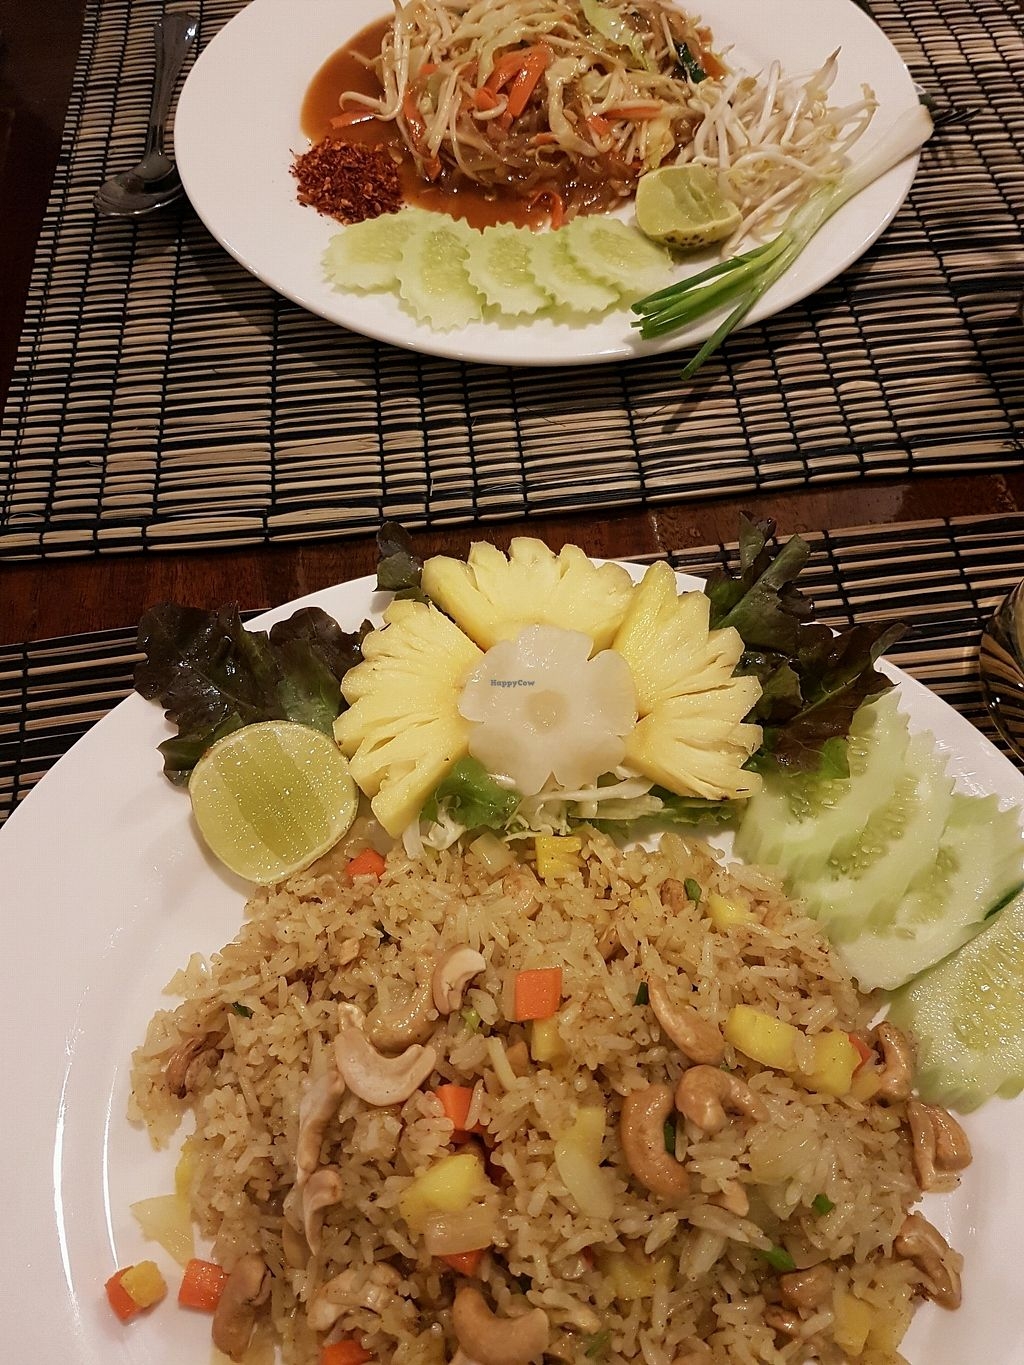 """Photo of Pailay  by <a href=""""/members/profile/ZuzannaChronowska"""">ZuzannaChronowska</a> <br/>Fried rice with cashews and pineapple + vegan pad thai  <br/> November 29, 2017  - <a href='/contact/abuse/image/106139/330304'>Report</a>"""